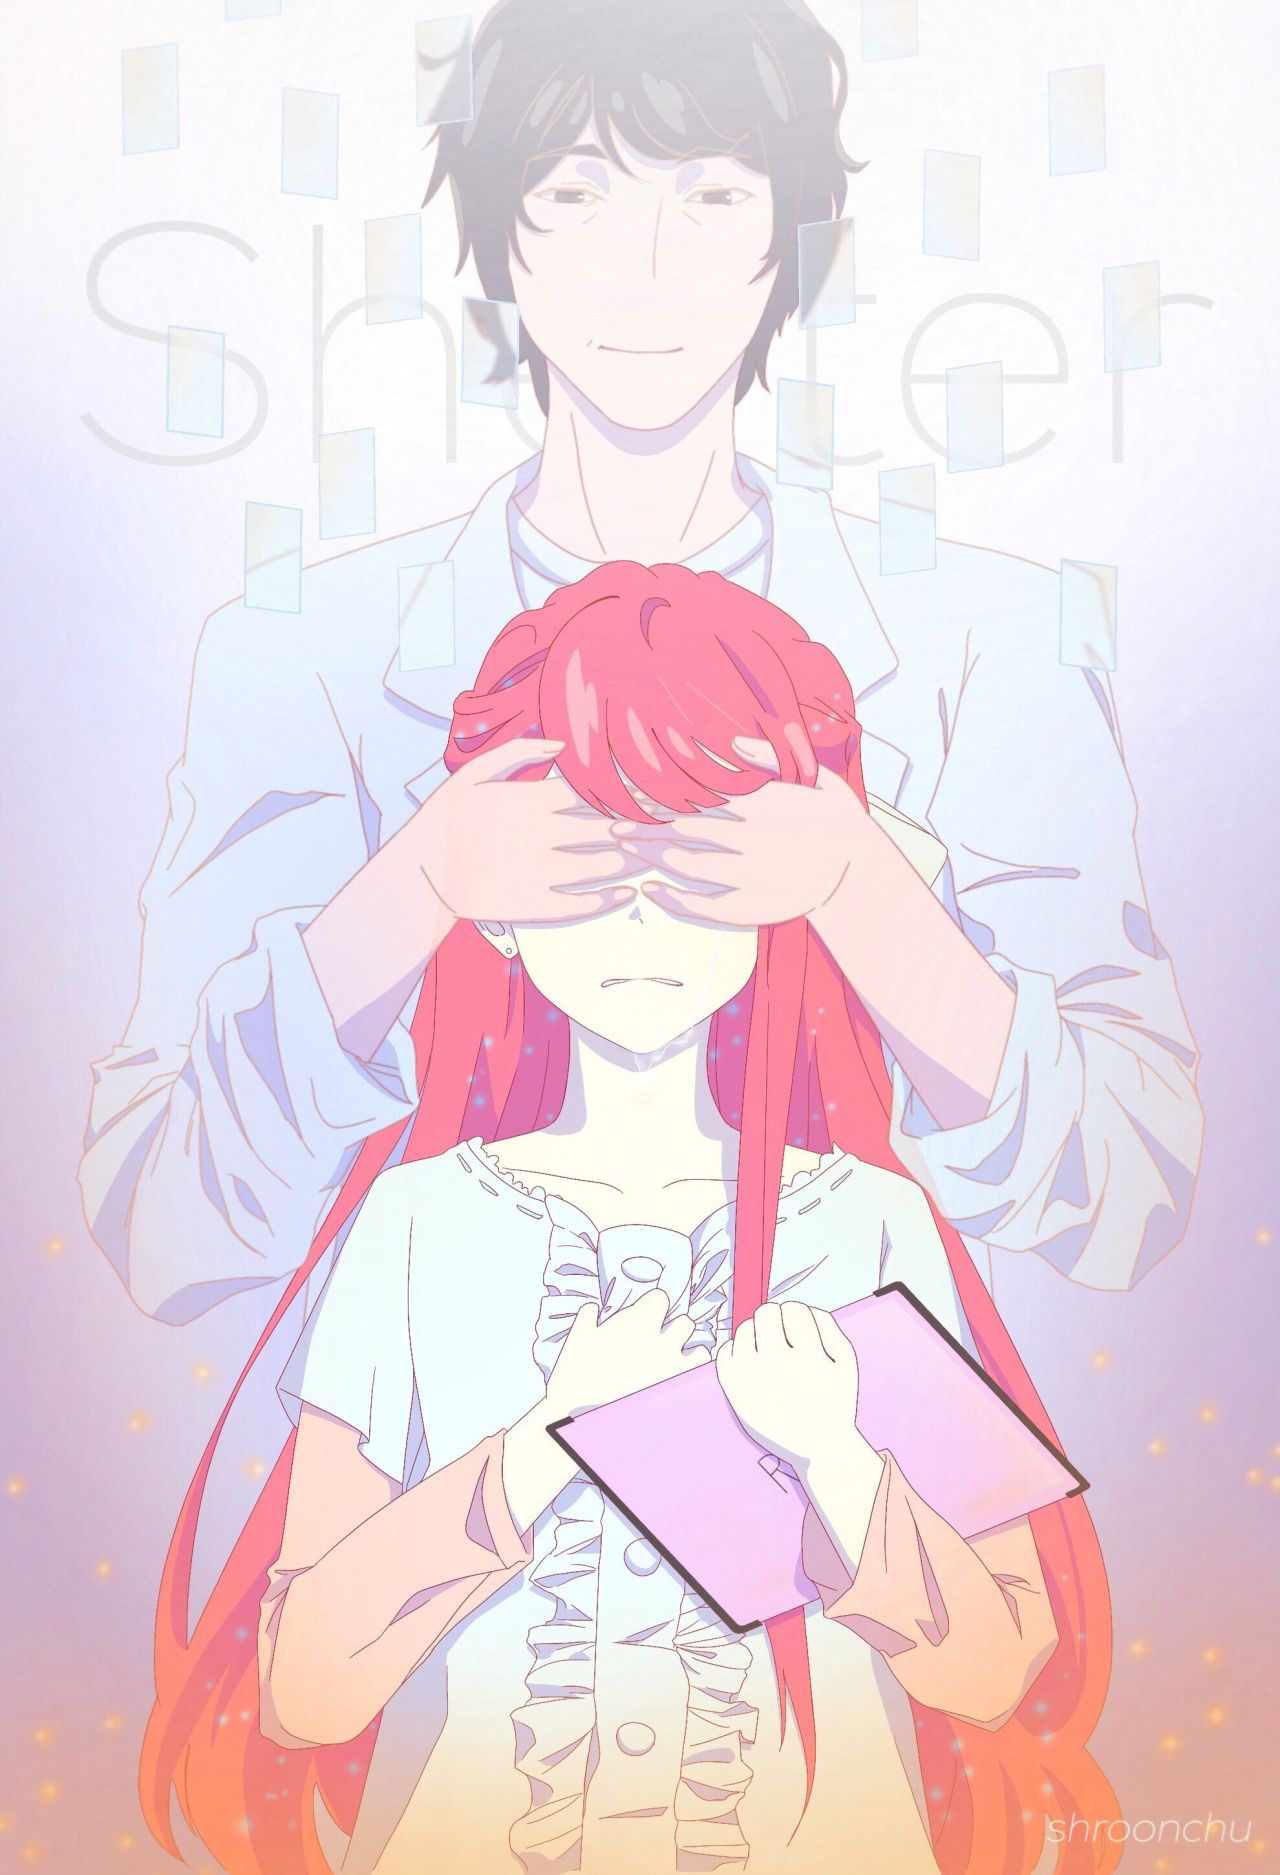 """Shelter has become my new obsession why is it so pretty aahhh Characters belong to Porter Robinson, Madeon, and Crunchyroll Composition inspired by """""""